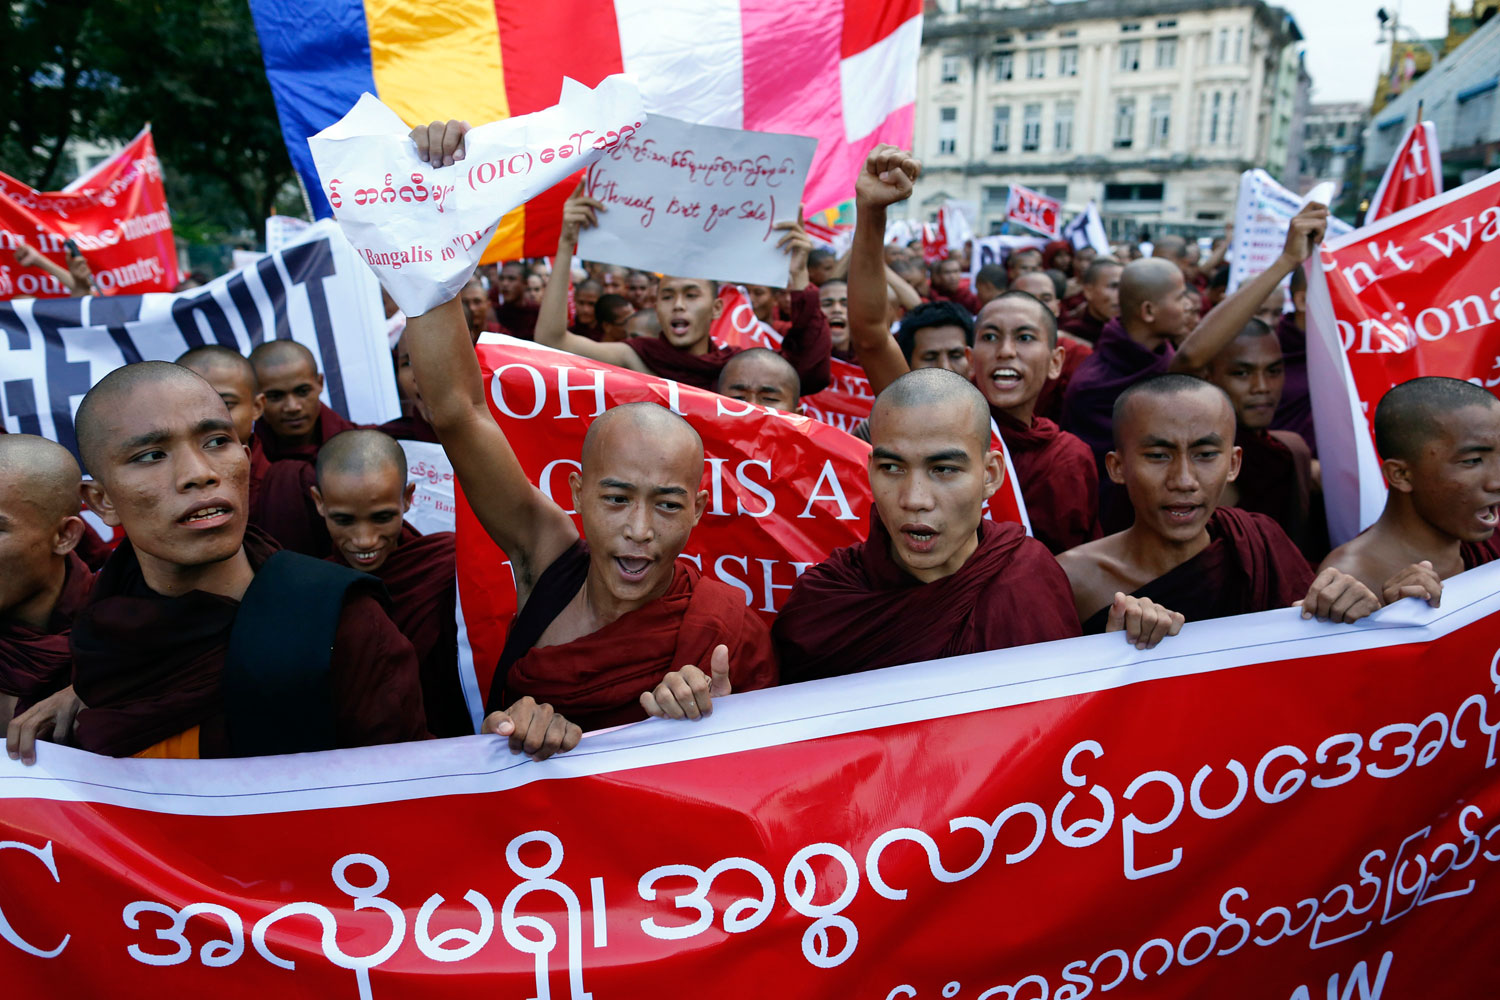 Buddhist monks protest against a visit to Myanmar by a high-level delegation from the Organization of Islamic Cooperation (OIC), in Yangon in November  2013. The clergy play a leading role in stoking anti-Muslim feeling.